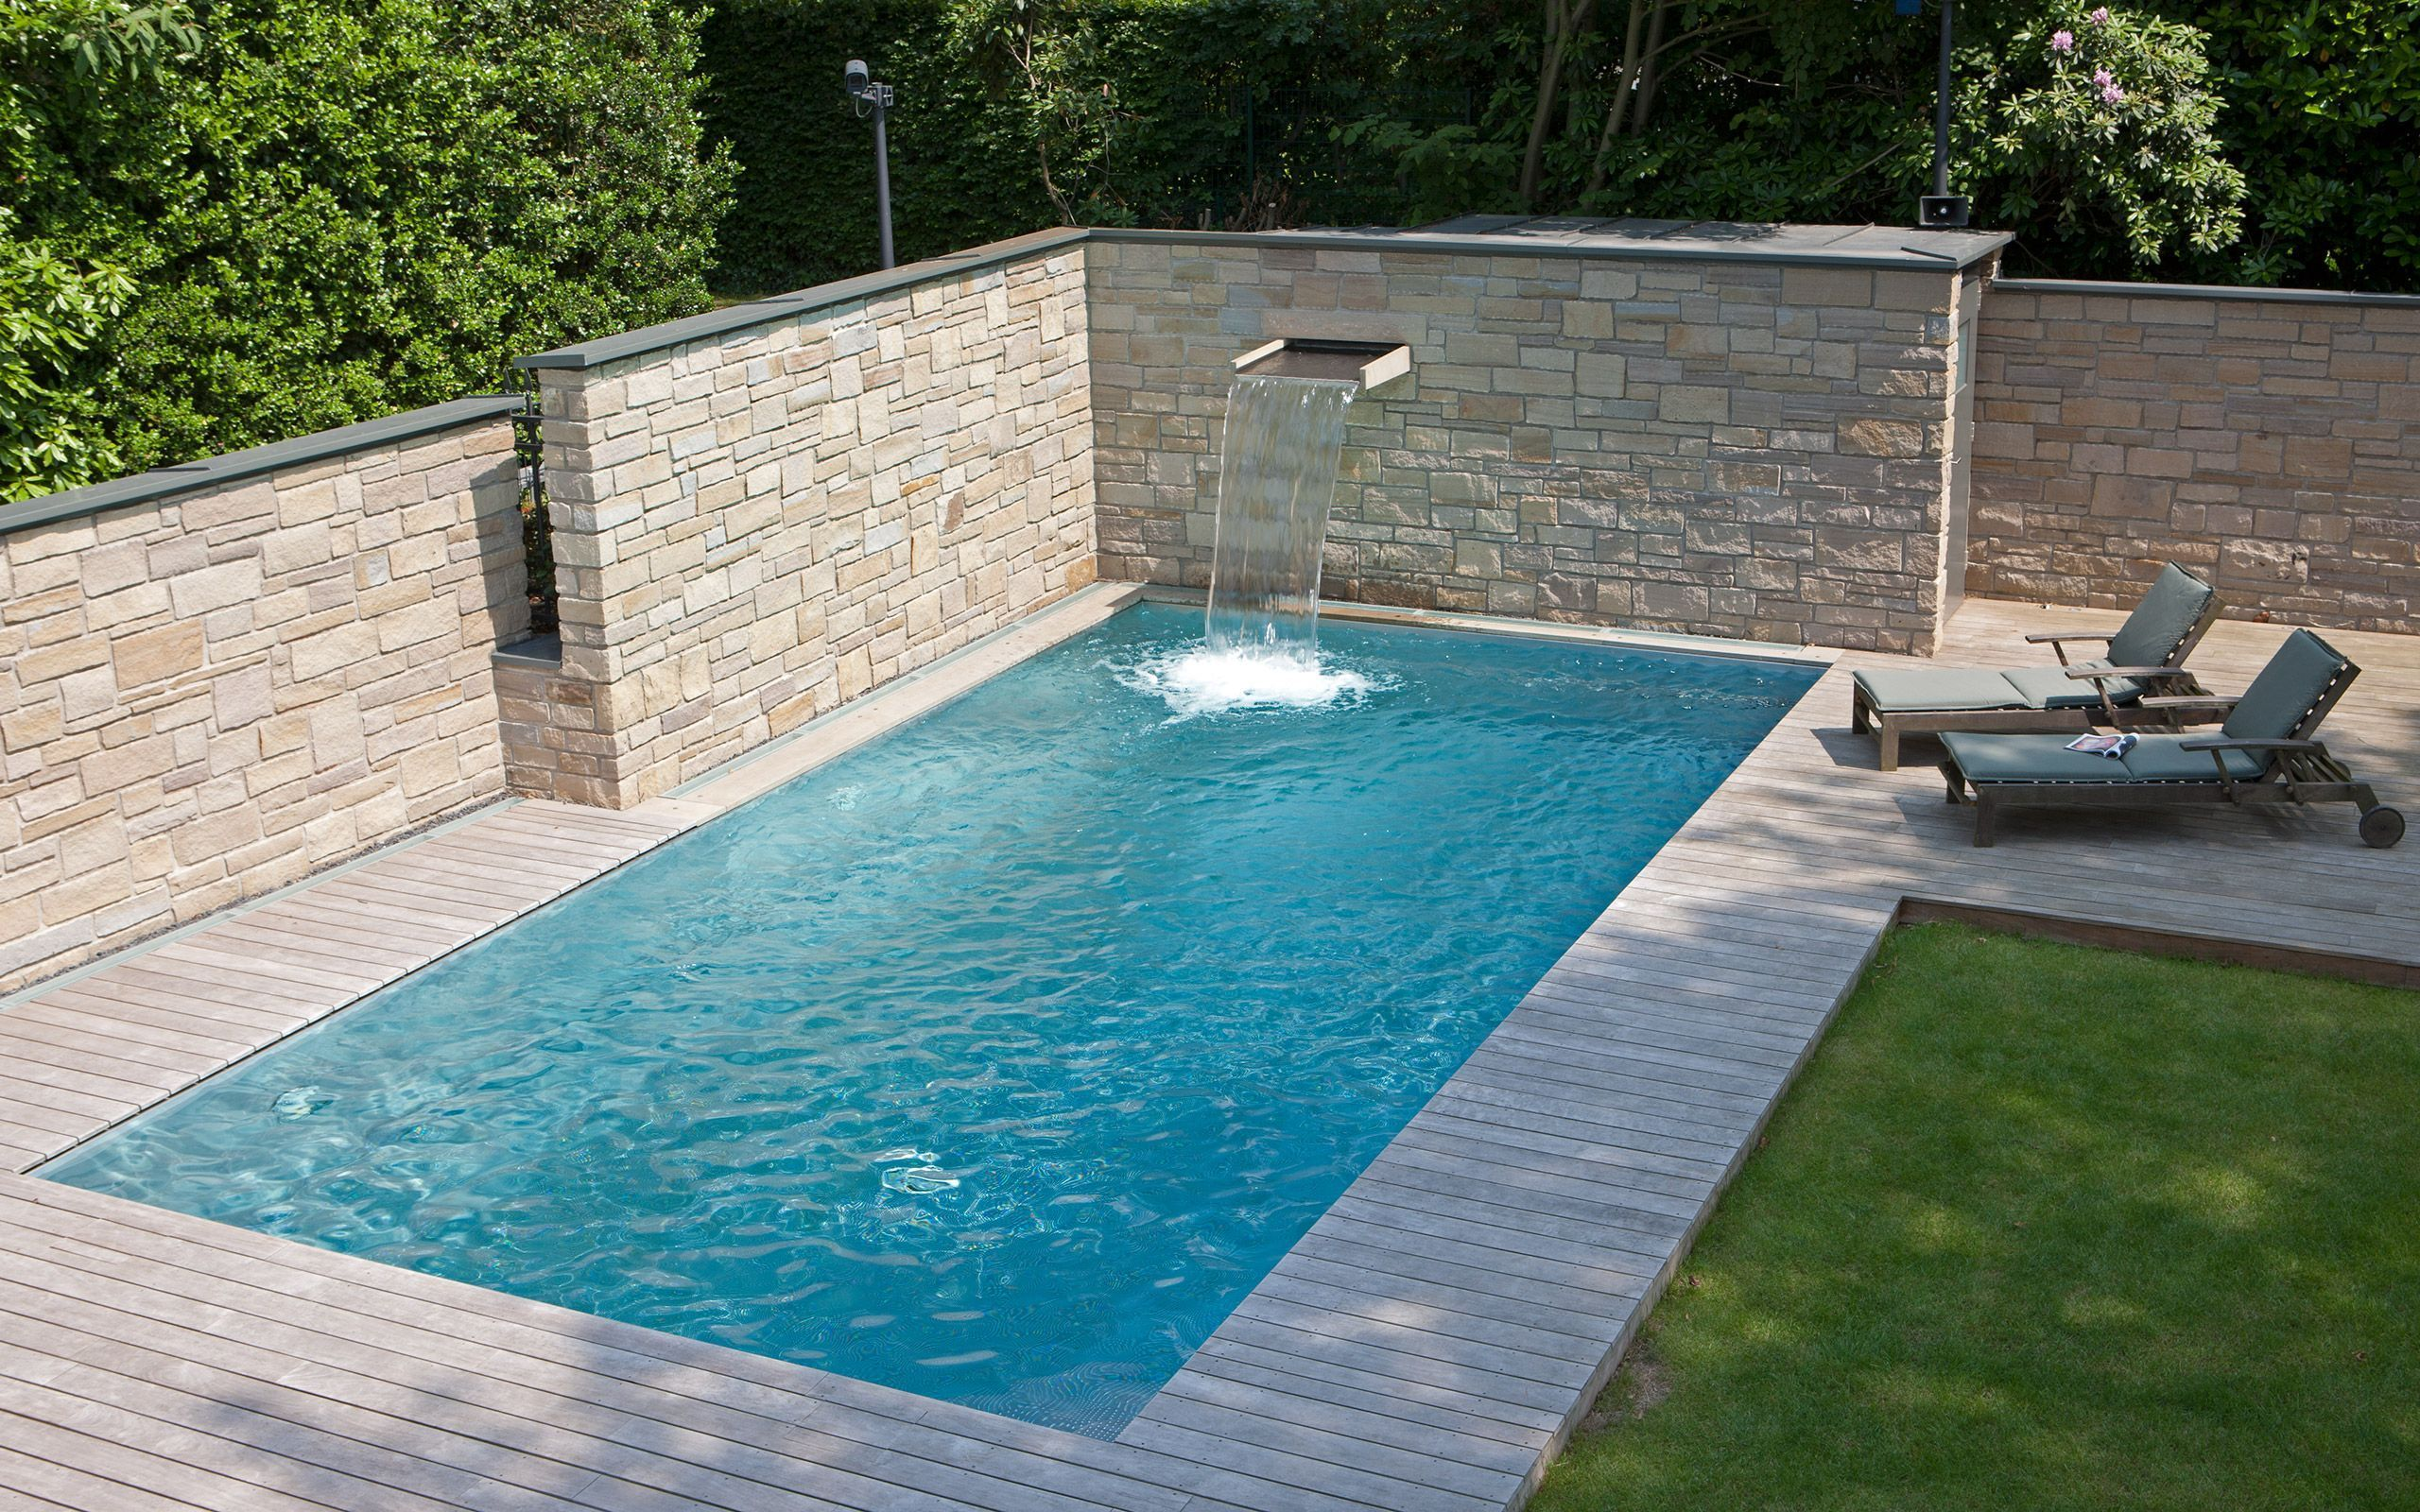 Pool Edelstahl Stainless Steel Pool With Skimmer Technology And Integrated, Semicircular Stairs, 9 - Stainle… | Schwimmbad-designs, Kleiner Pool Design, Kleine Hinterhof-pools